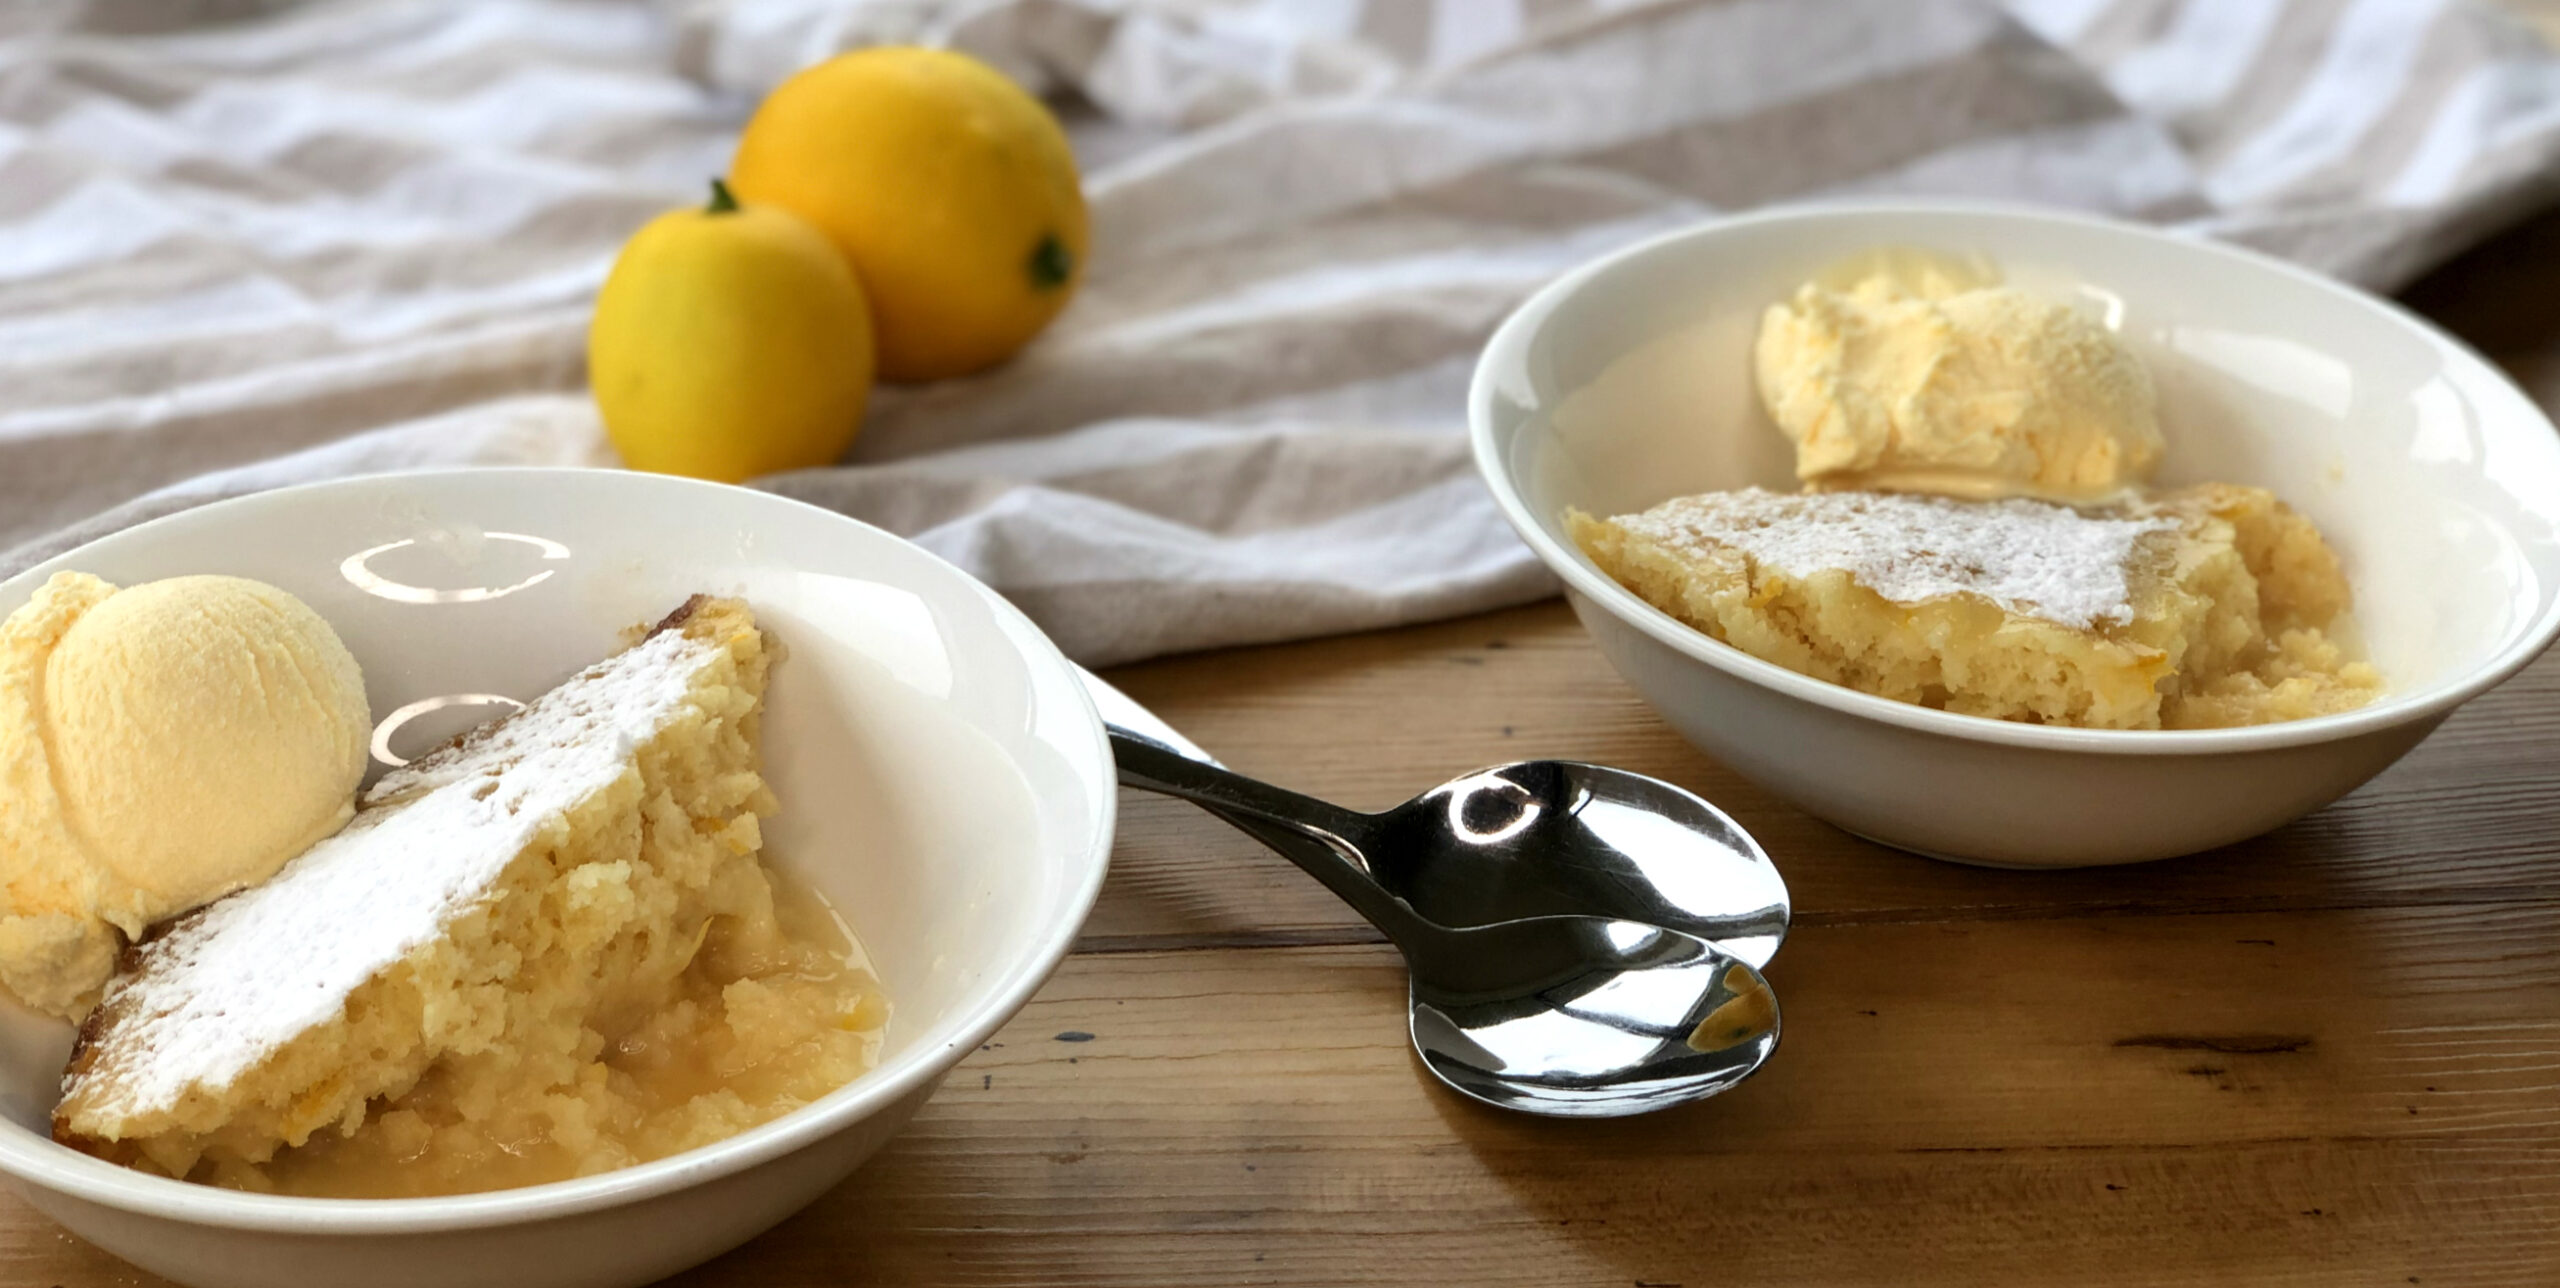 Warm lemon slow cooker desserts in two bowls with ice cream and two lemons as props